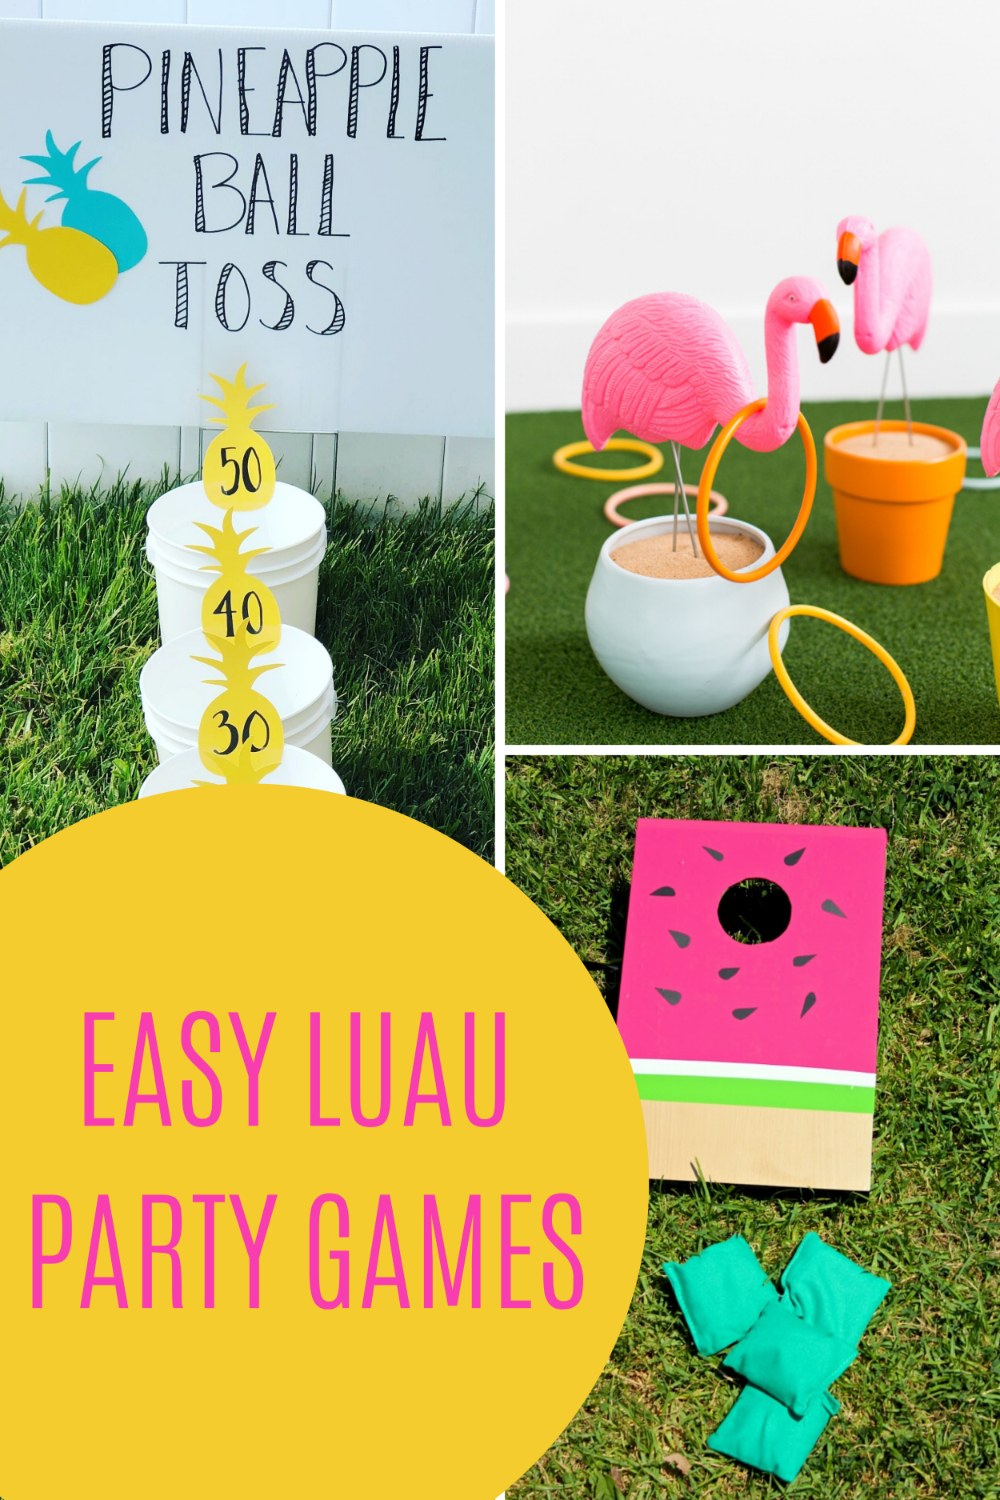 Easy Luau Party Games With Instructions - Peachy Party